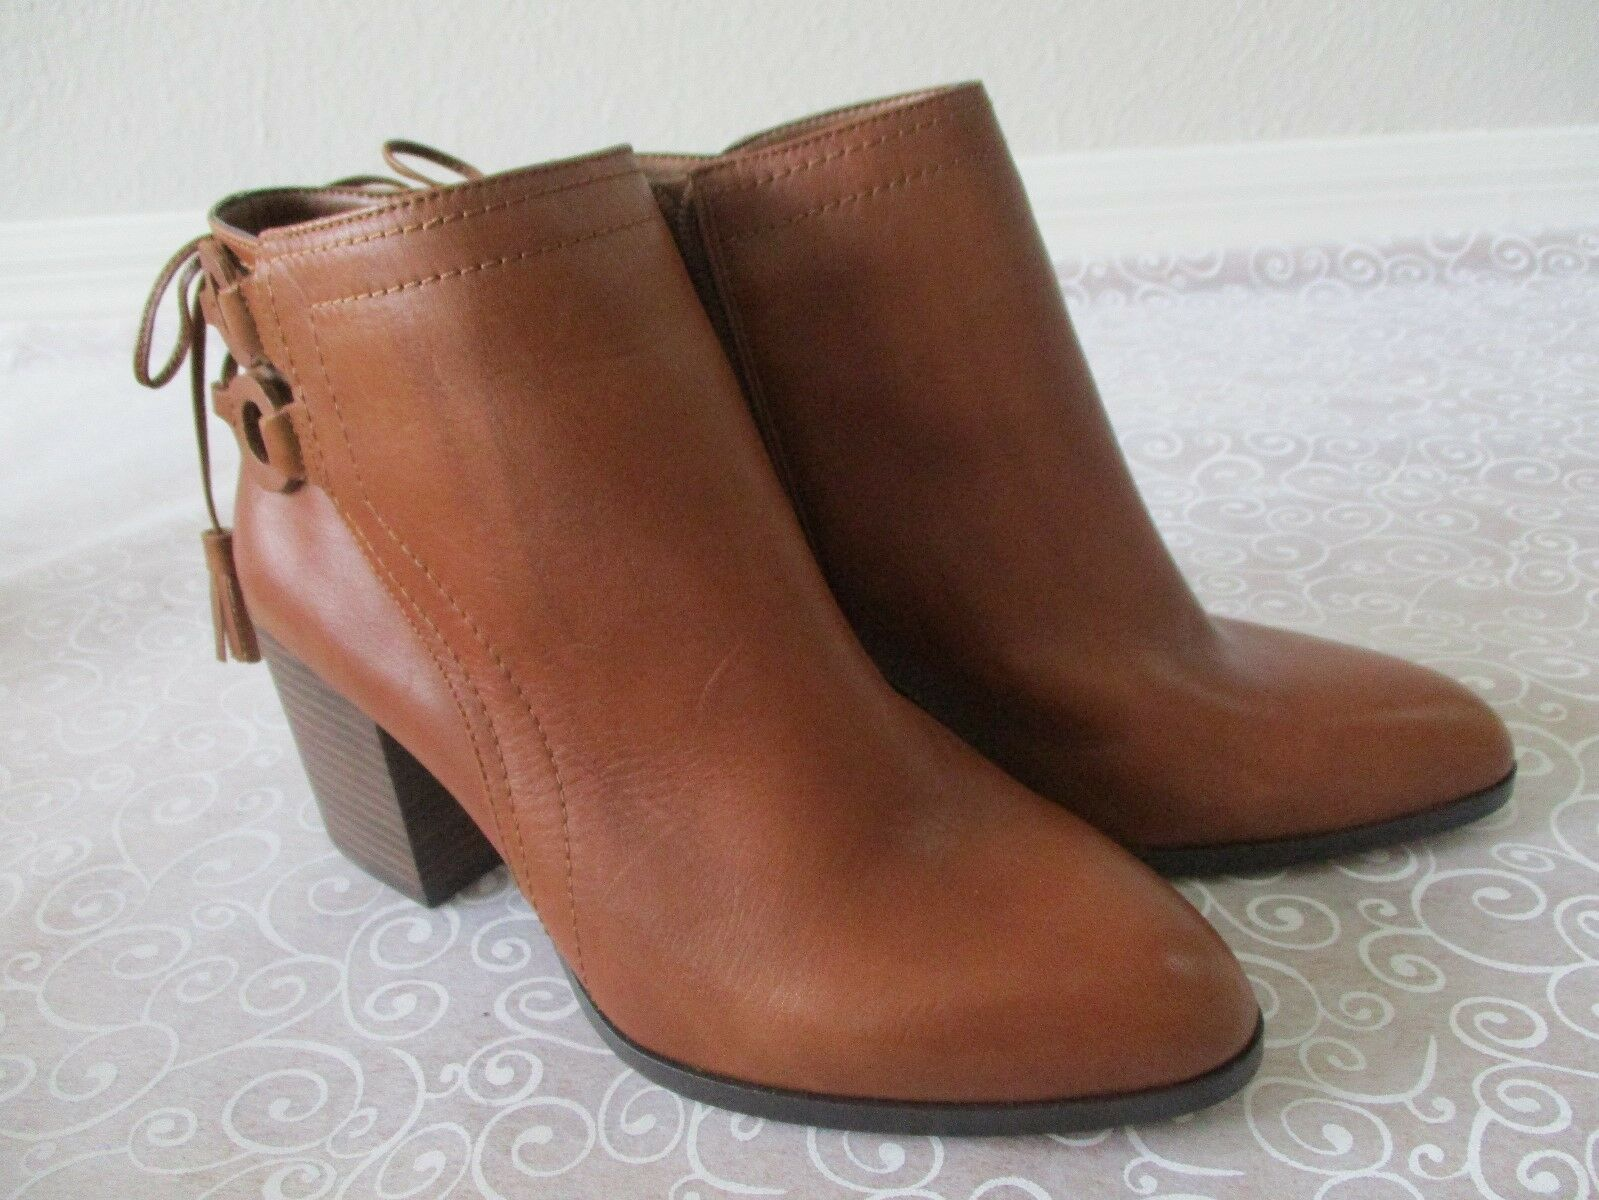 VINCE CAMUTO BROWN LEATHER ANKLE ZIP UP BOOTS SIZE 8 1/2 W - NEW